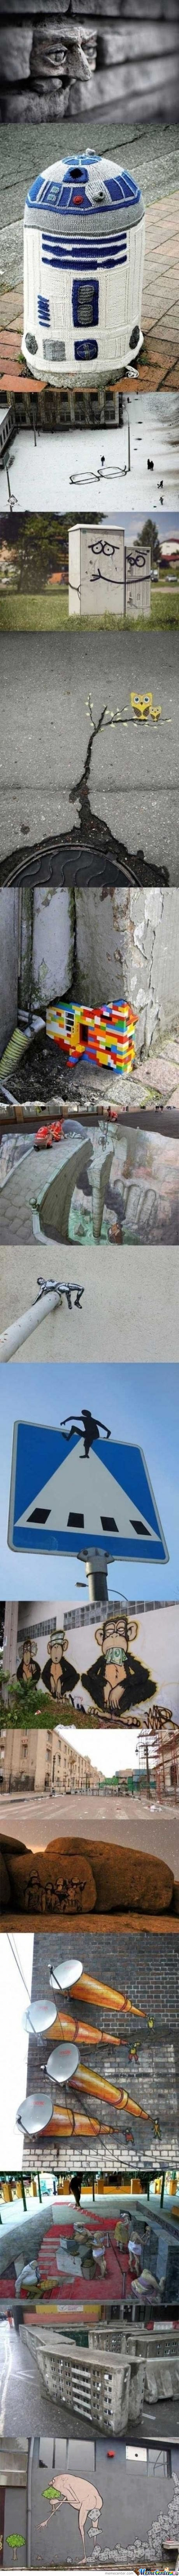 Awesome Graffiti Around The World